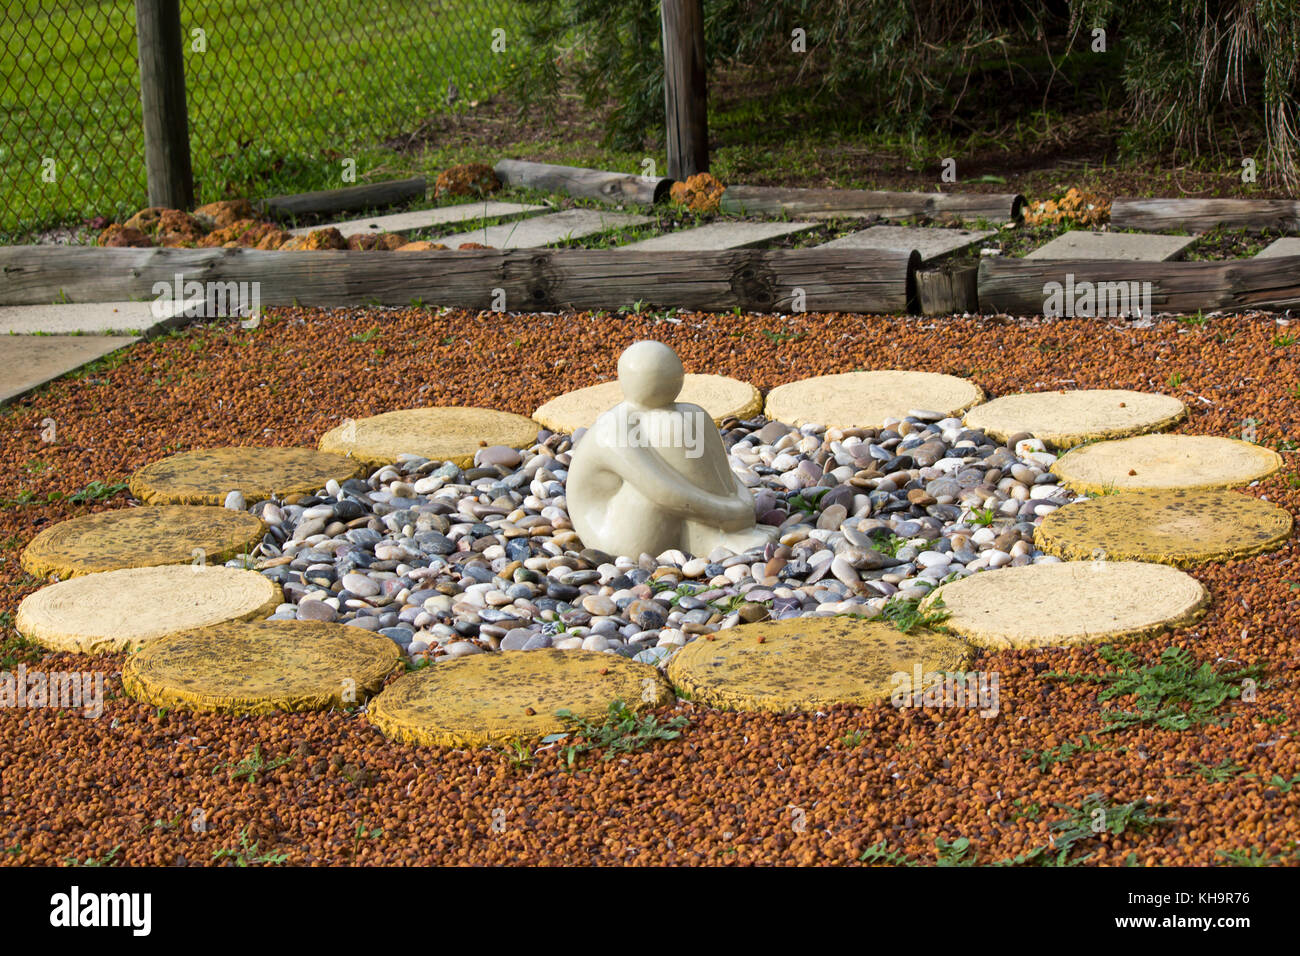 Ceramic figure sitting on stones encircled by round concrete ...